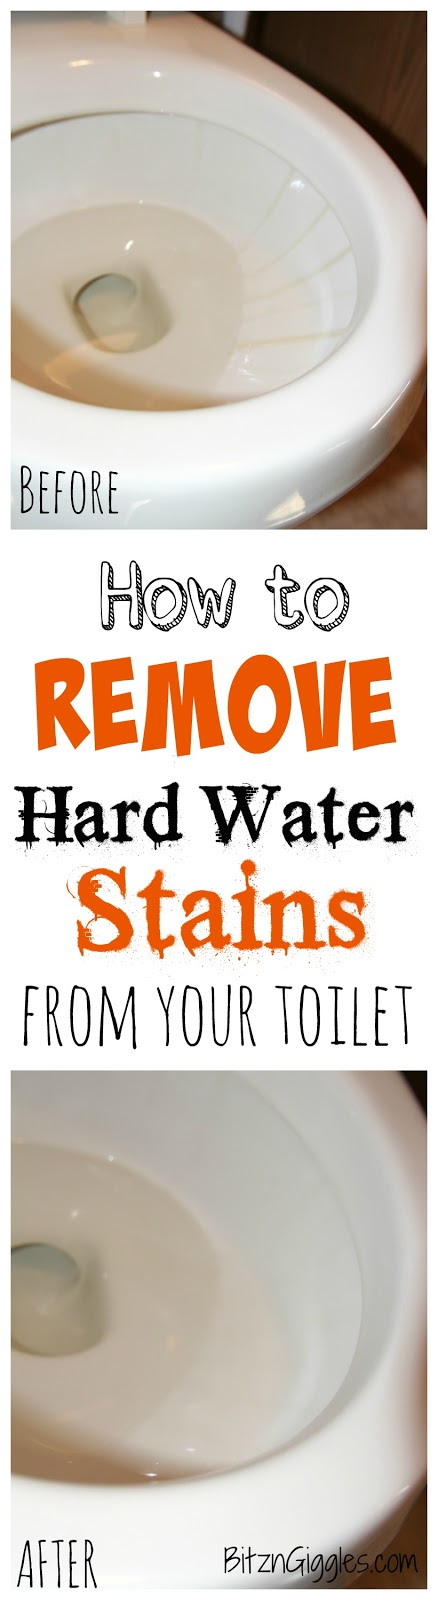 bathroom cleaning tips, bathroom cleaning, cleaning hacks, bathroom hacks, diy, diy hacks, life hacks, clean bathroom